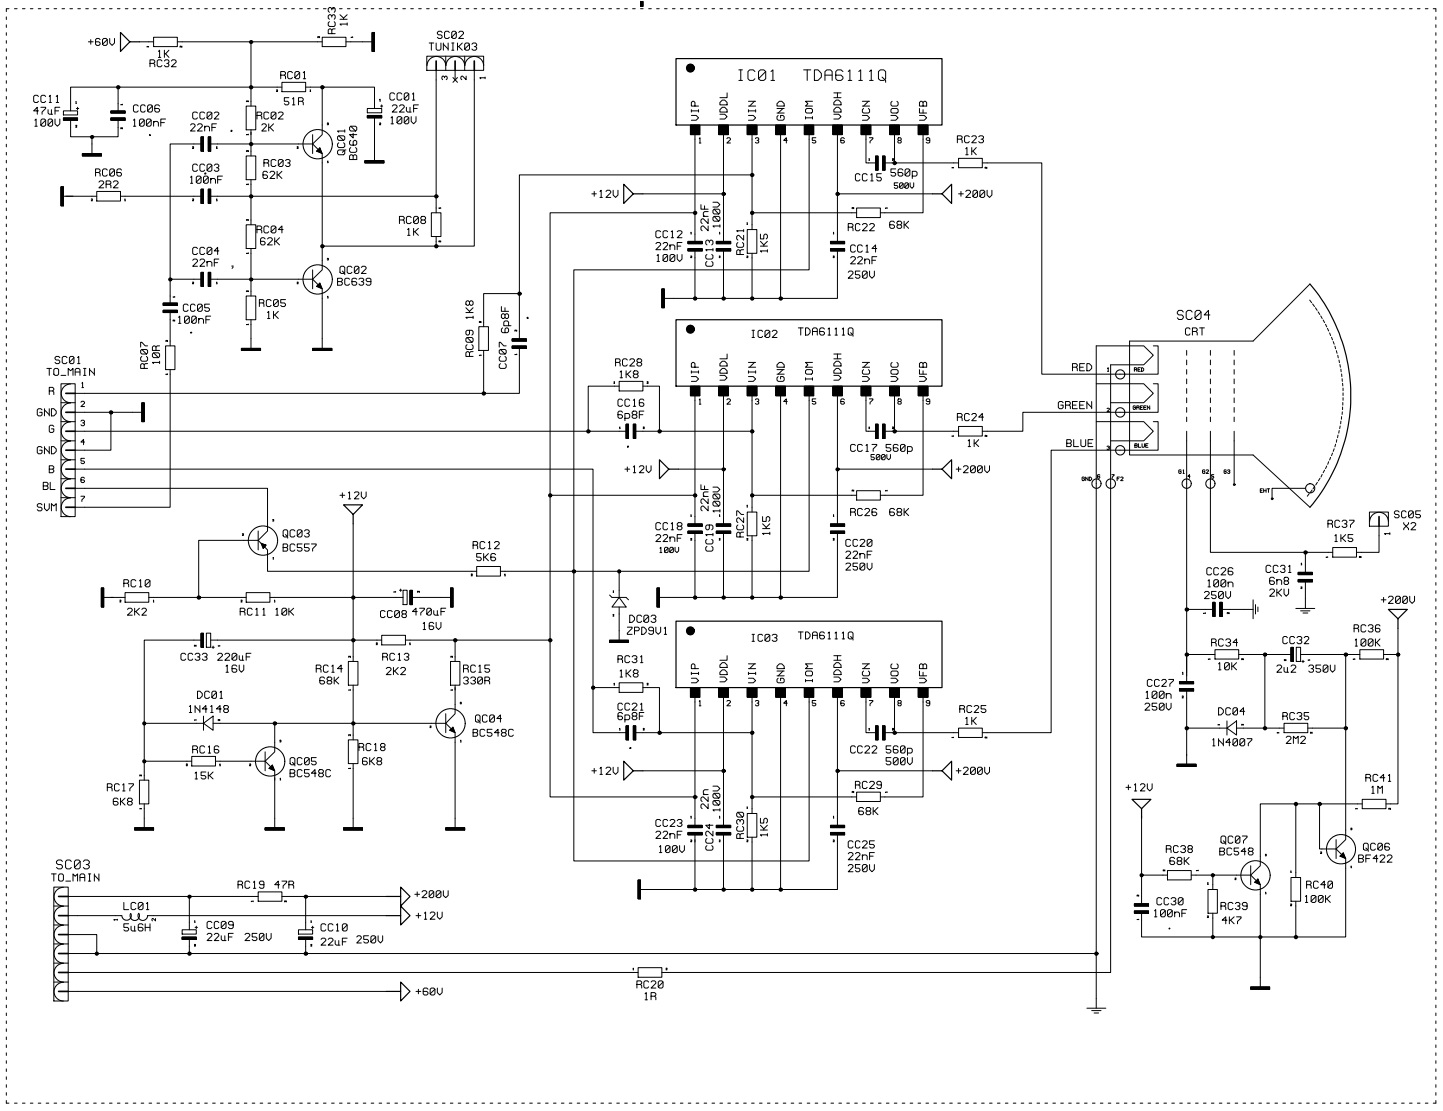 Profolio Pt100 100hz Ctv Circuit Diagram on engine schematics